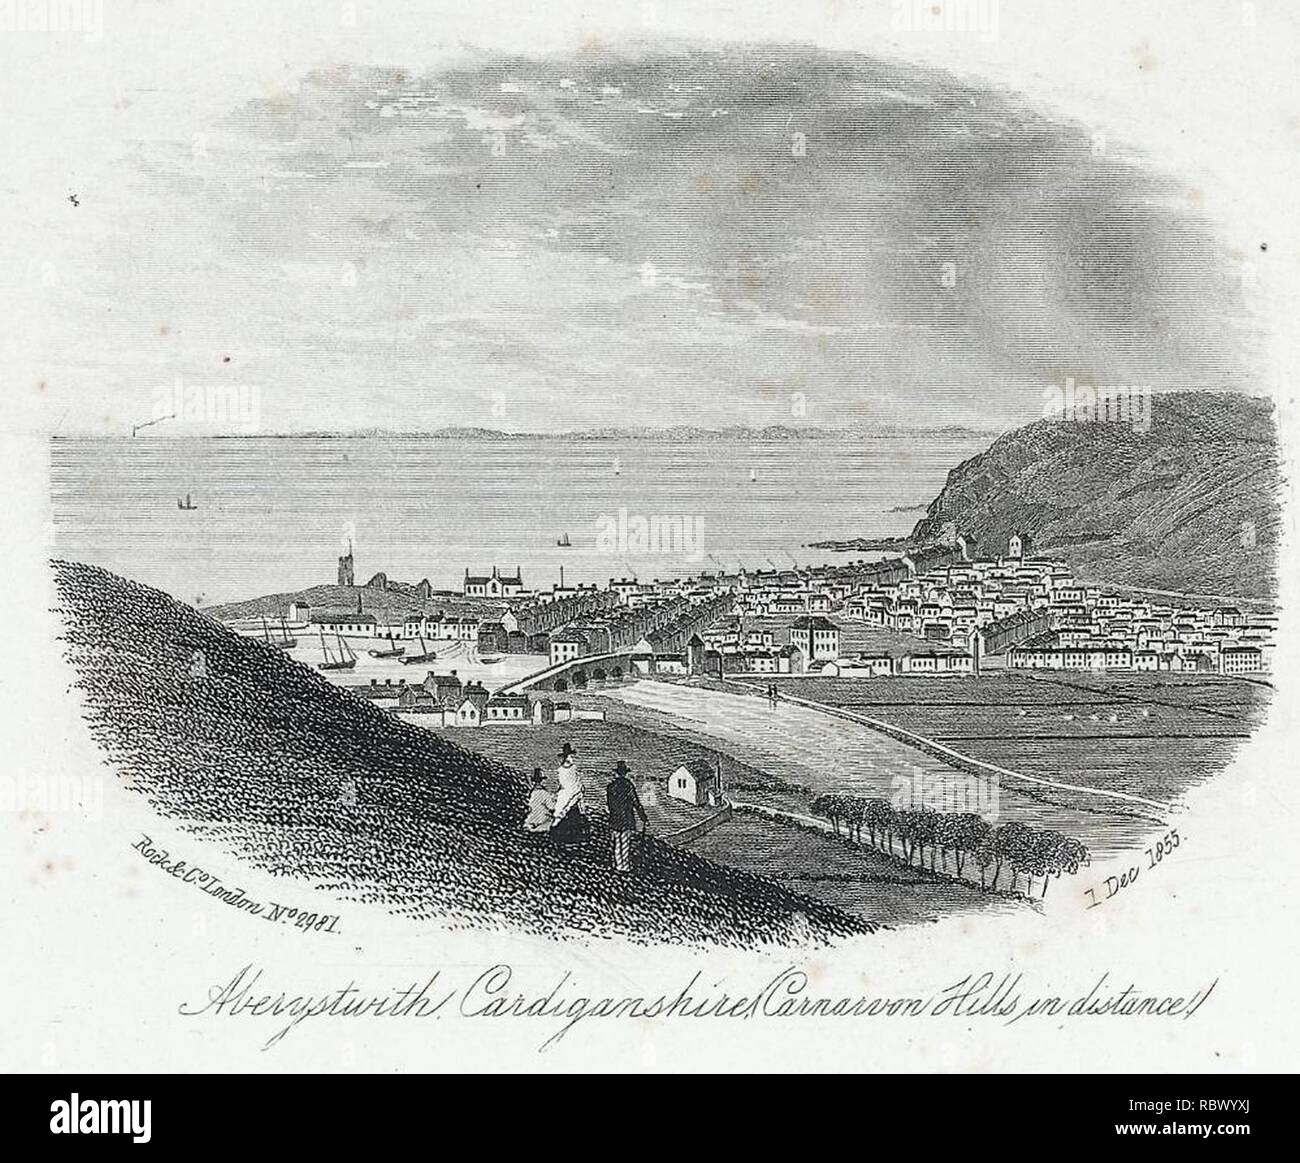 Aberystwith, Cardiganshire (Carnarvon hills in distance) (1131744). - Stock Image